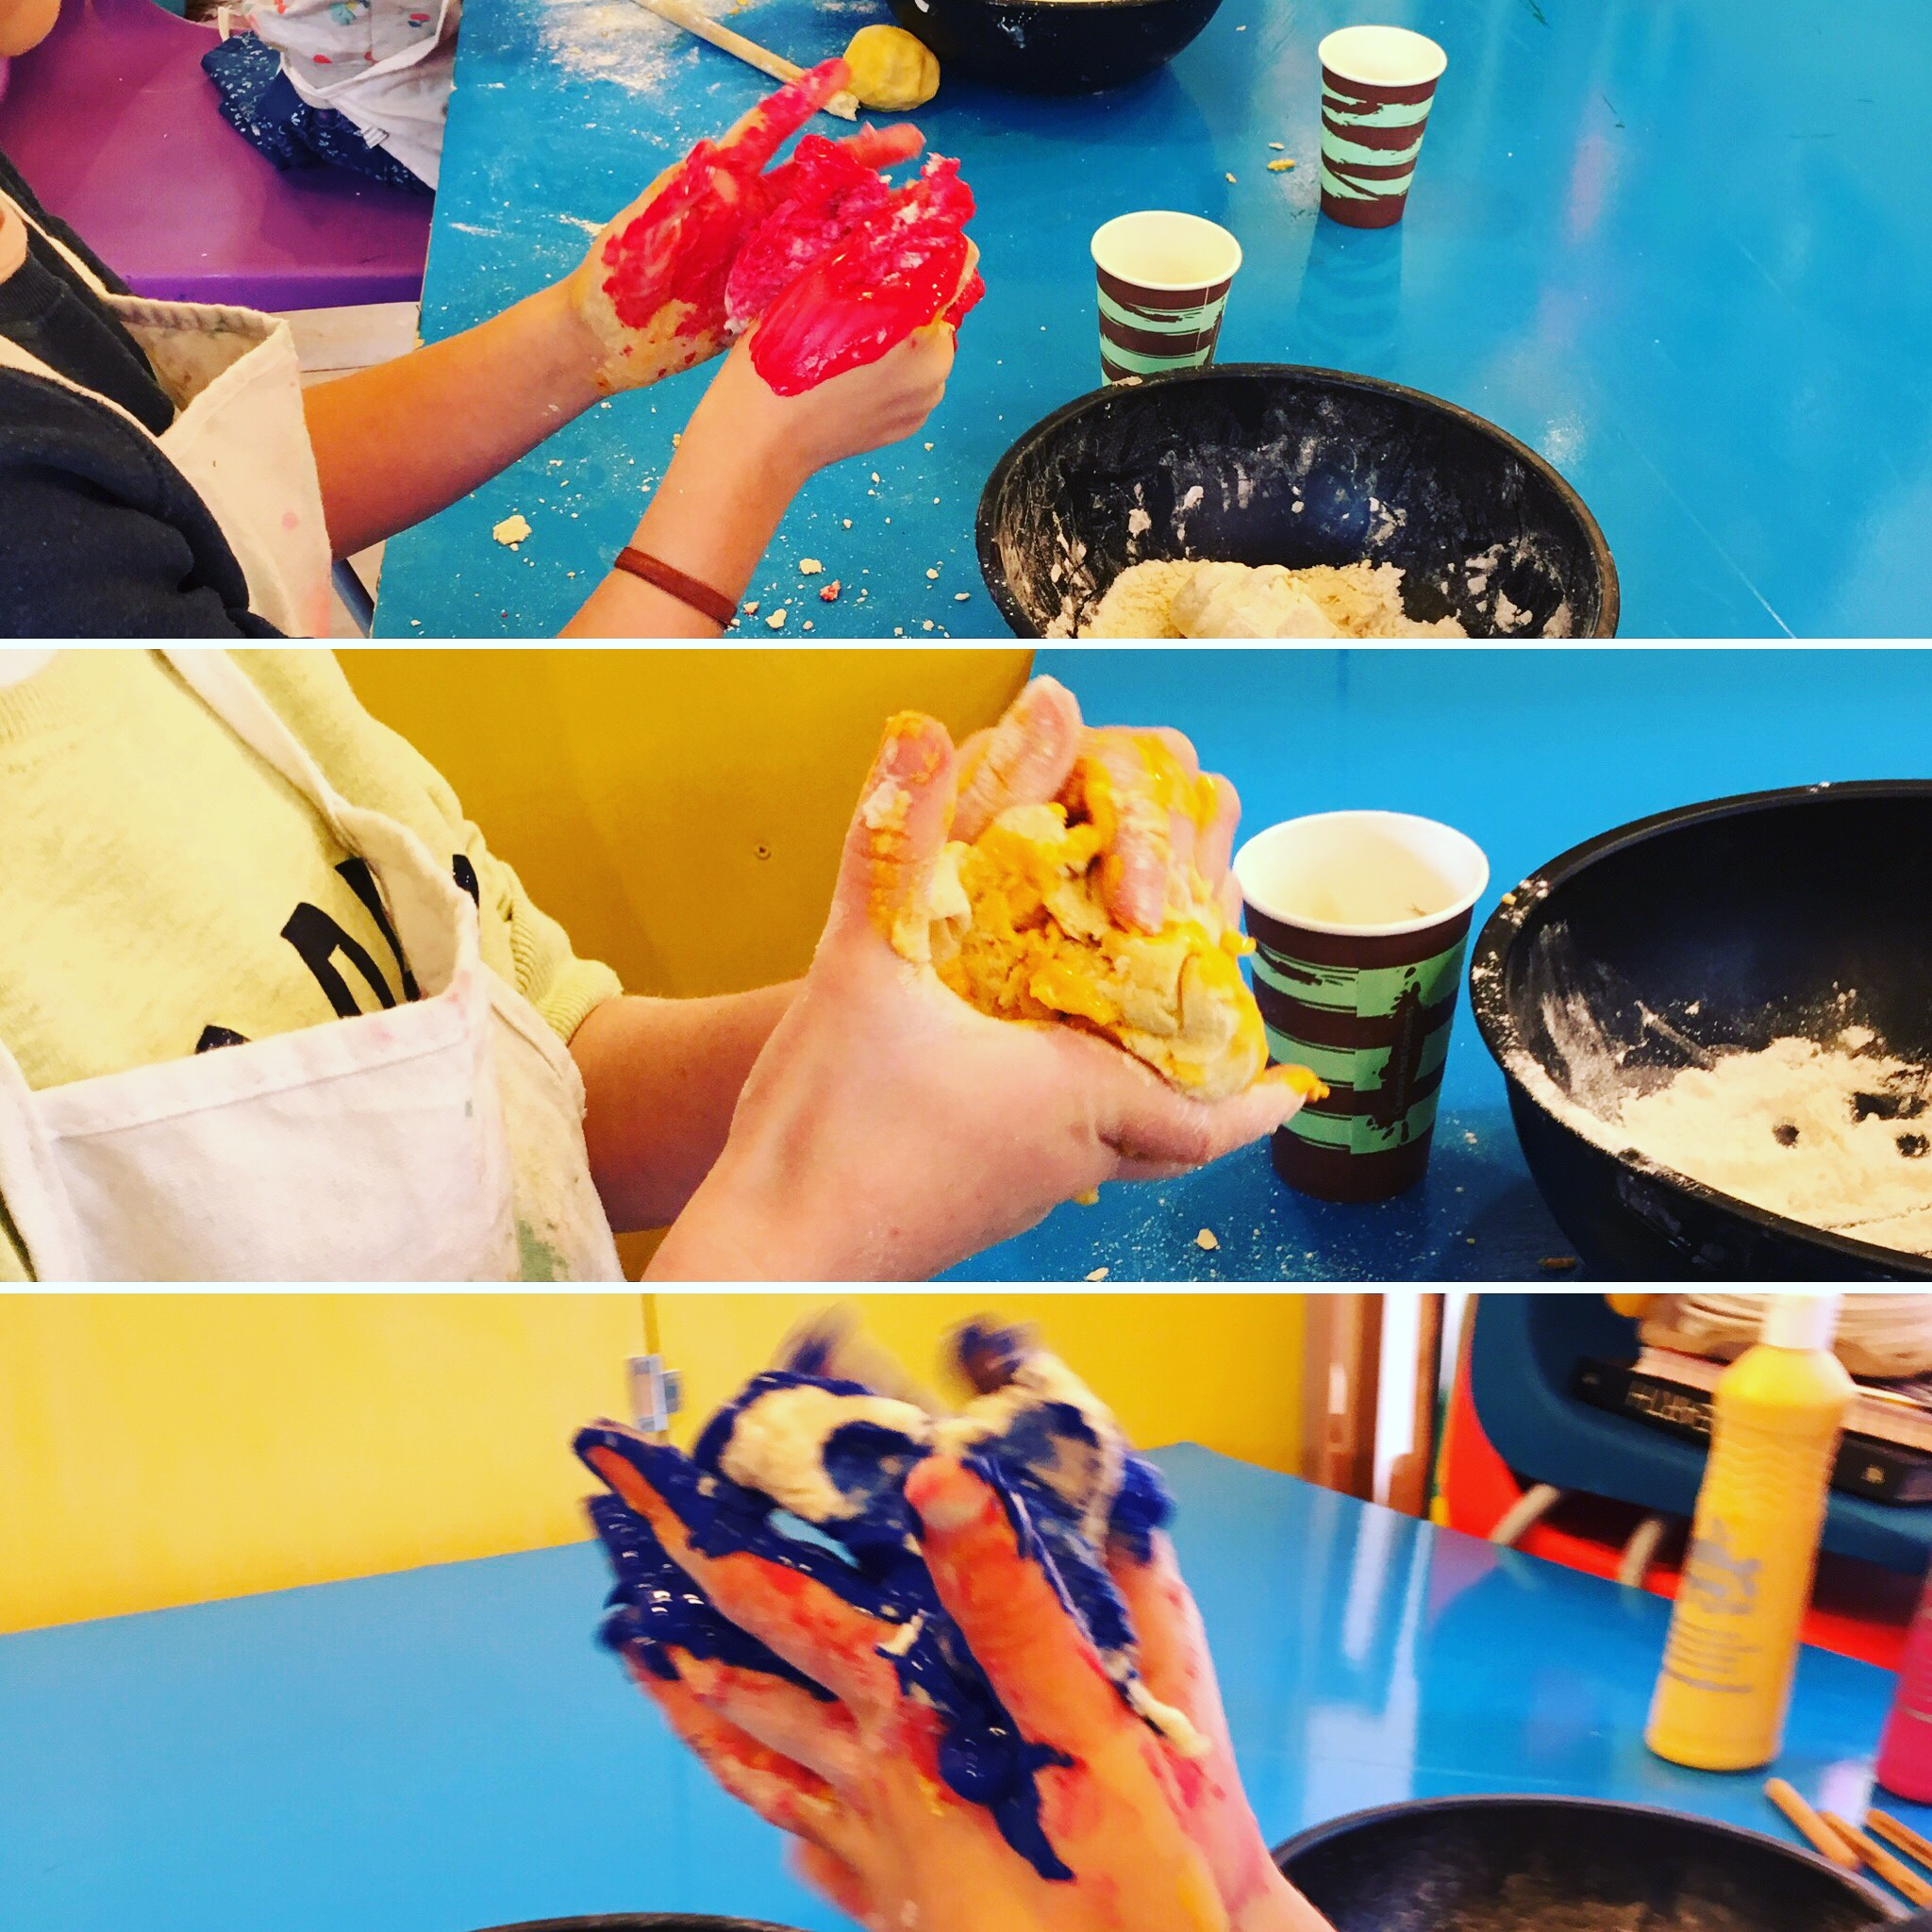 Discover & Create - Salt dough - The children made and coloured their own salt dough - great, messy fun - and then made abstract faces inspired by artist Kimmy Cantrell